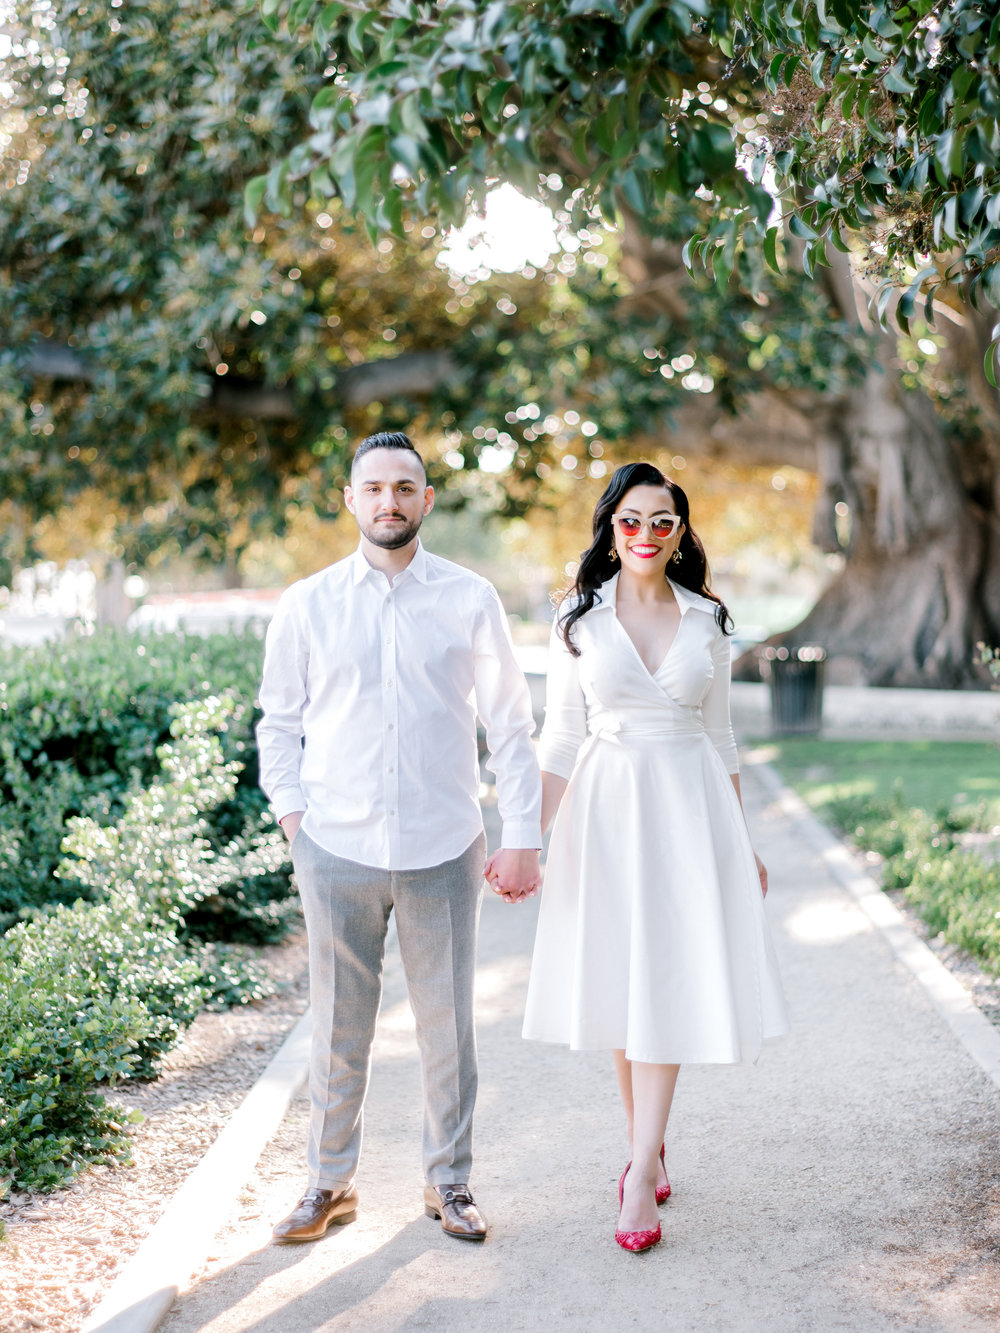 Rene Zadori Photography is your authority for wedding photography in southern California including Los Angeles, Glendale, Pasadena, Beverly Hills, & Orange County.